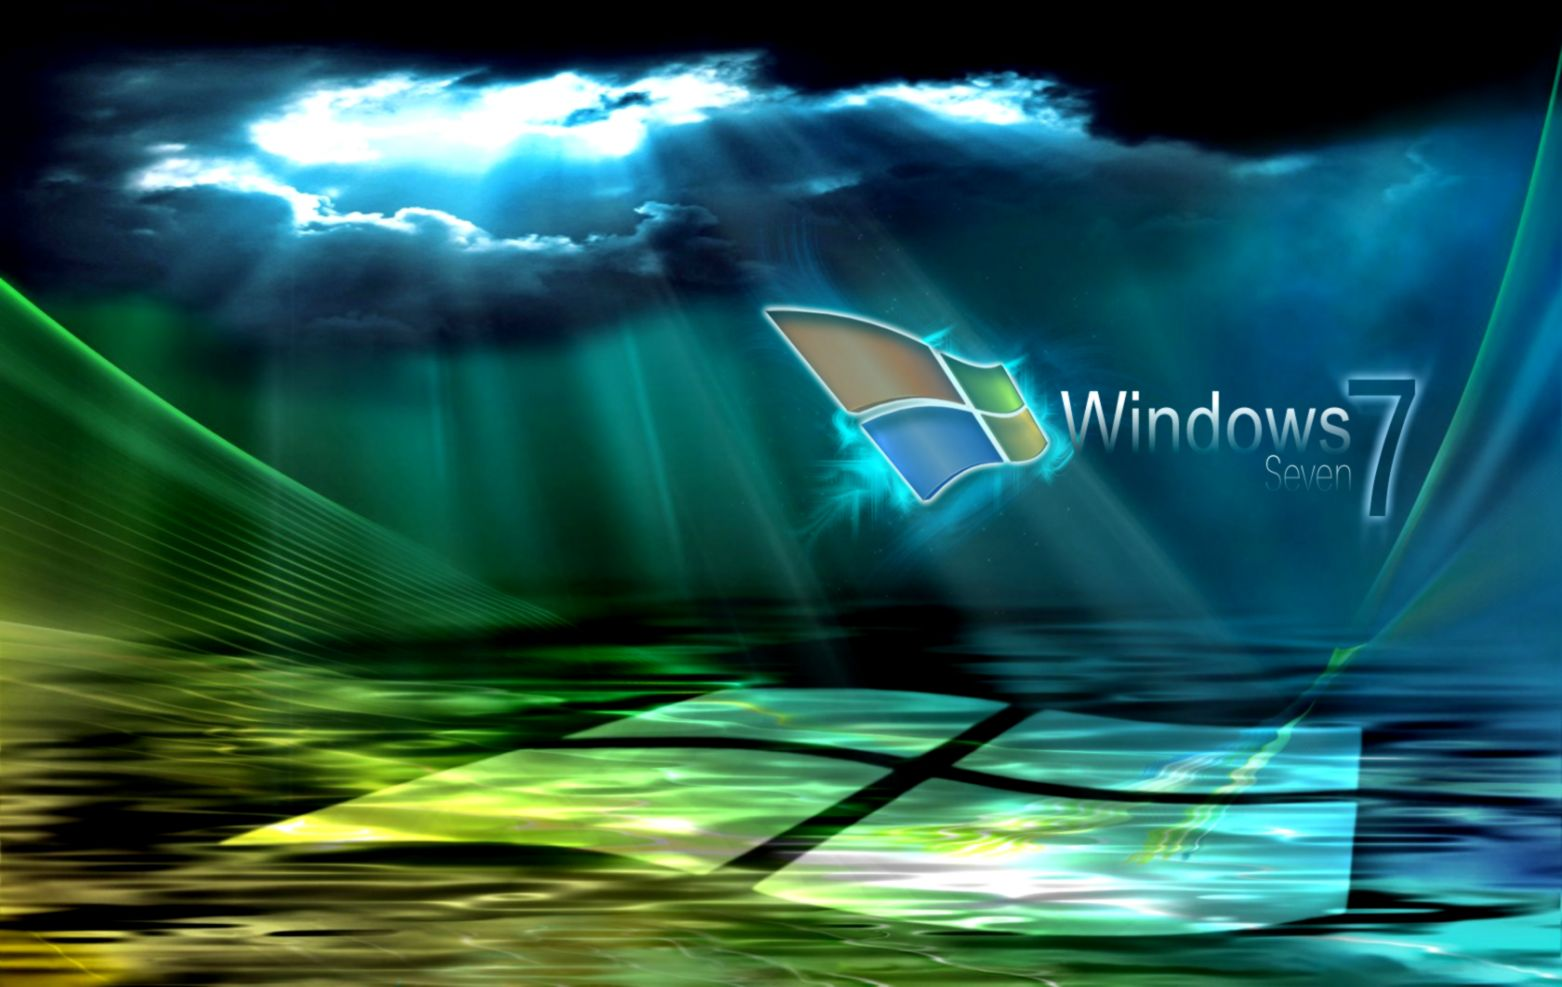 Desktop Background For Windows 7 Hd Wallpapers 1080p 1562x987